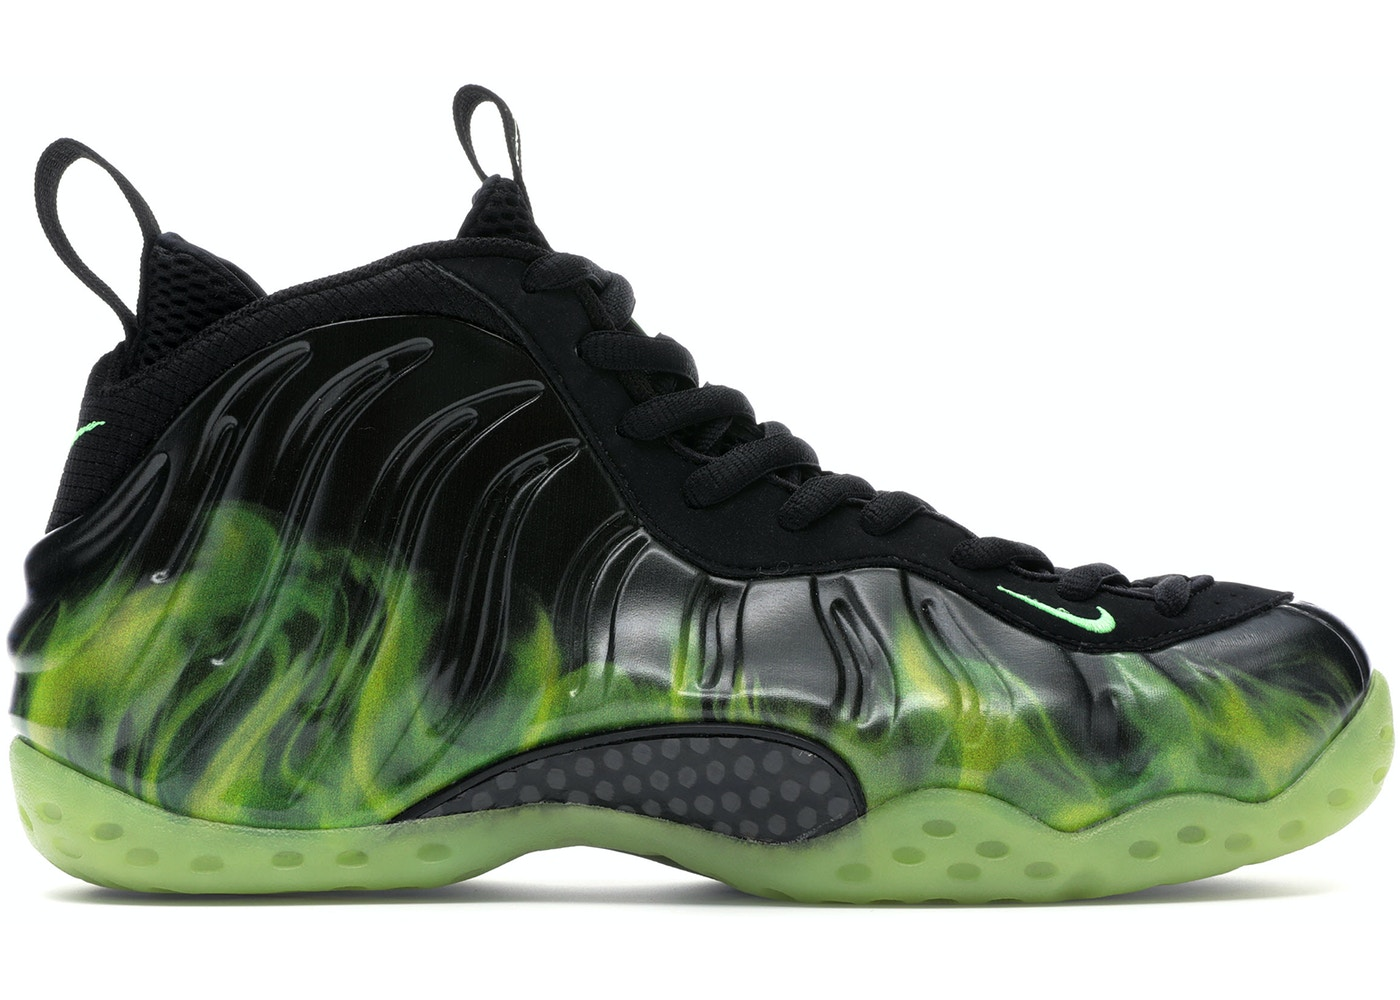 9df7df66bffaf Air Foamposite One ParaNorman - 579771-003